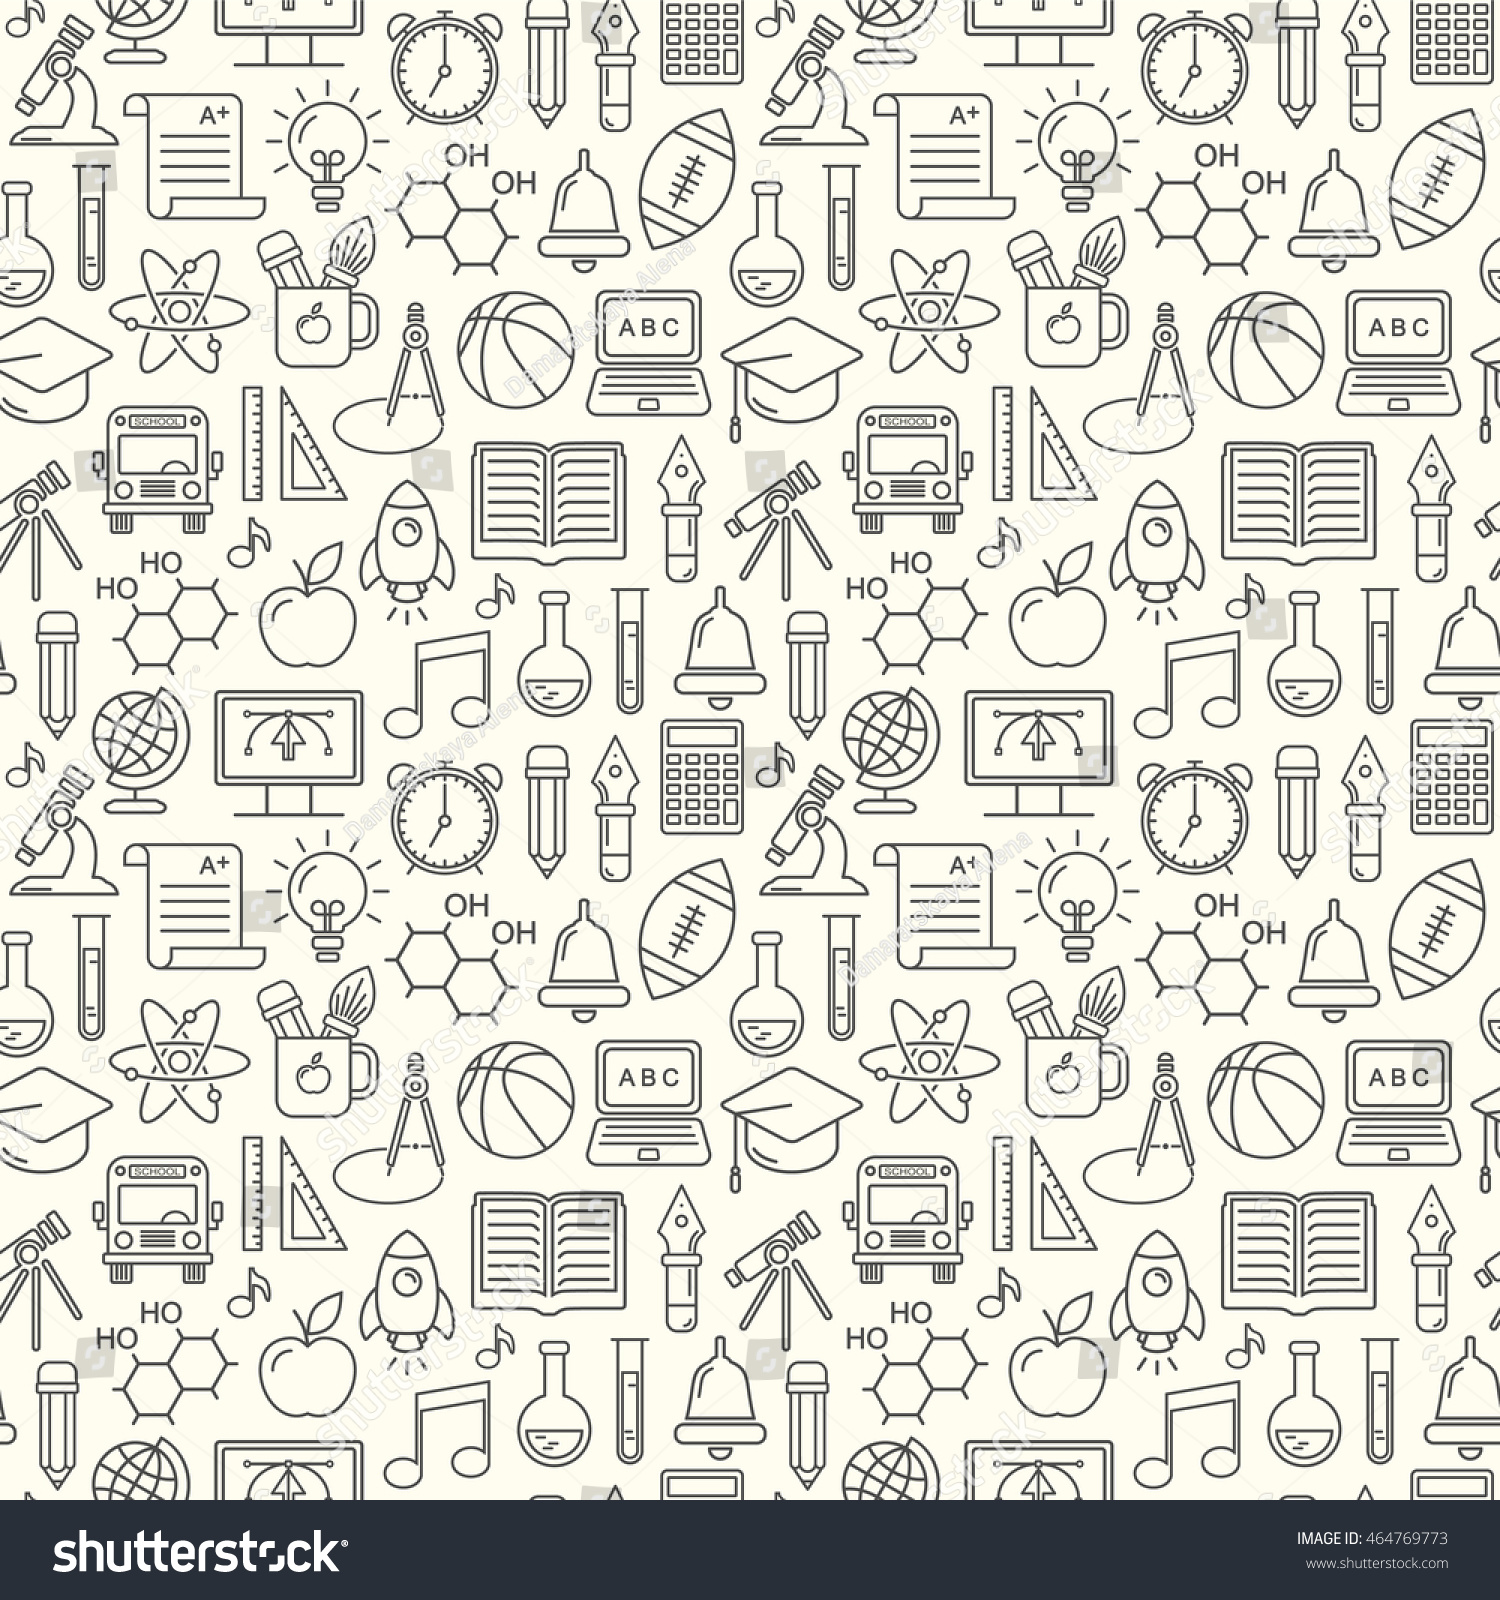 Modern Line Drawing Artists : Seamless vector school background education pattern stock